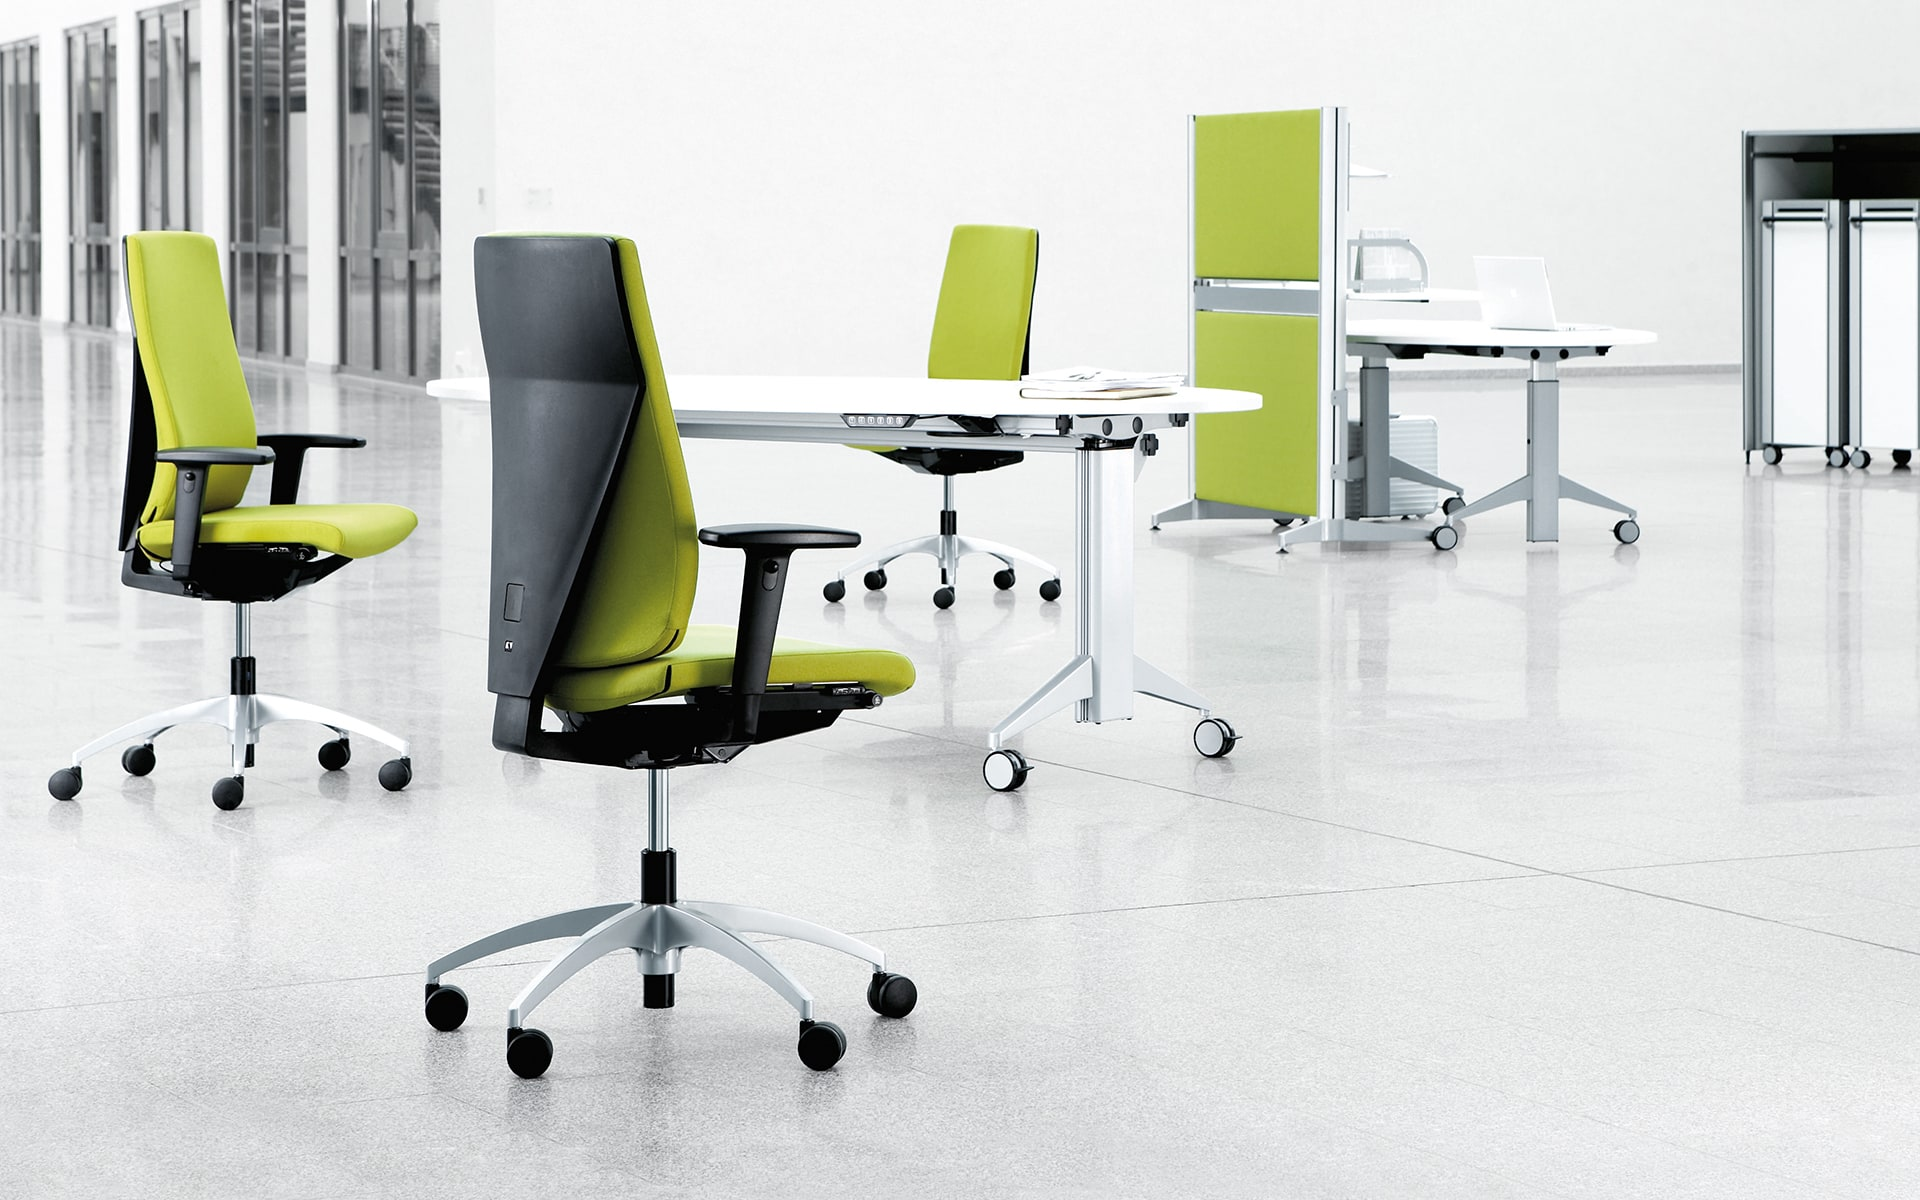 Three K+N Signeta swivel chairs by ITO Design with bright green upholstery in monochromatic office